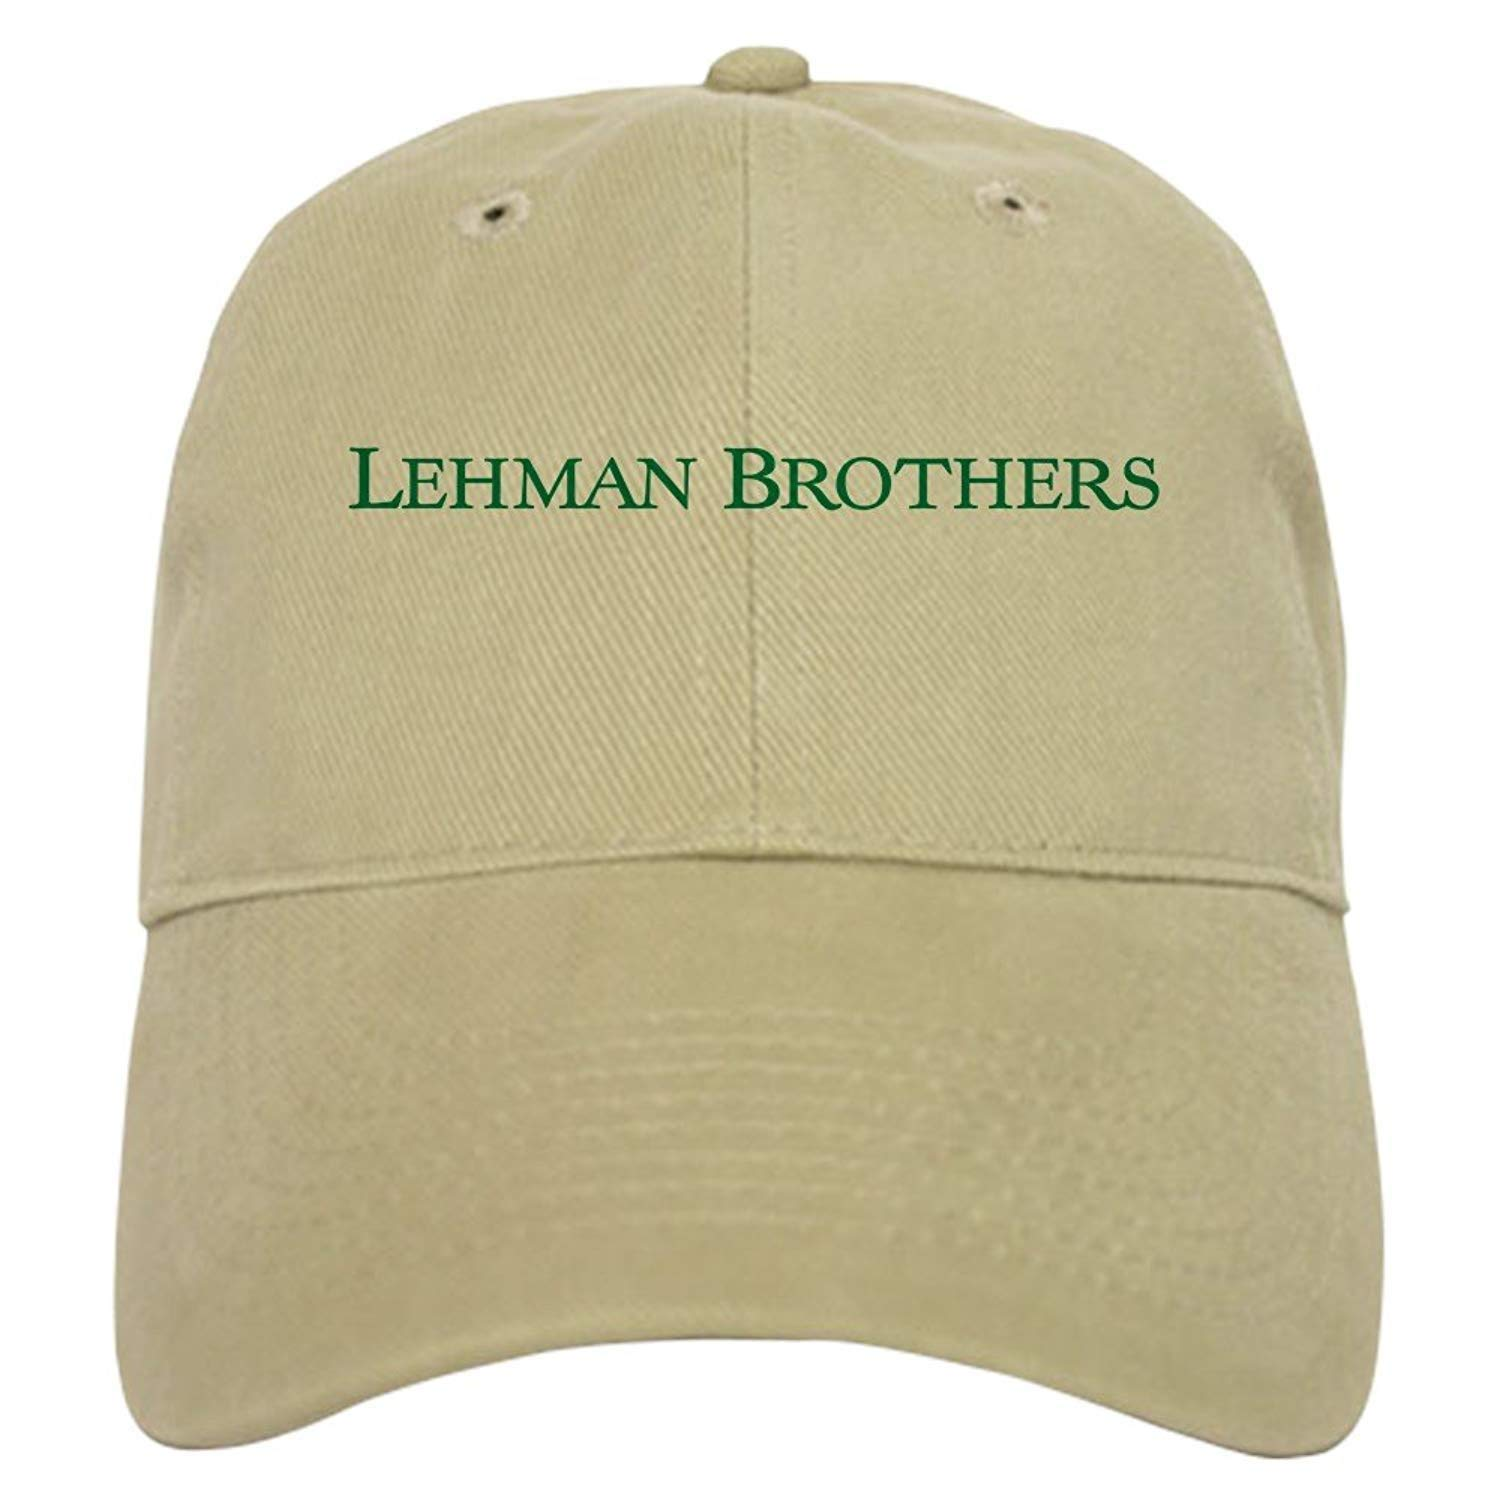 HENBEERS Lehman Brothers Cap - Baseball Cap with Adjustable Closure, Unique Printed Baseball Hat